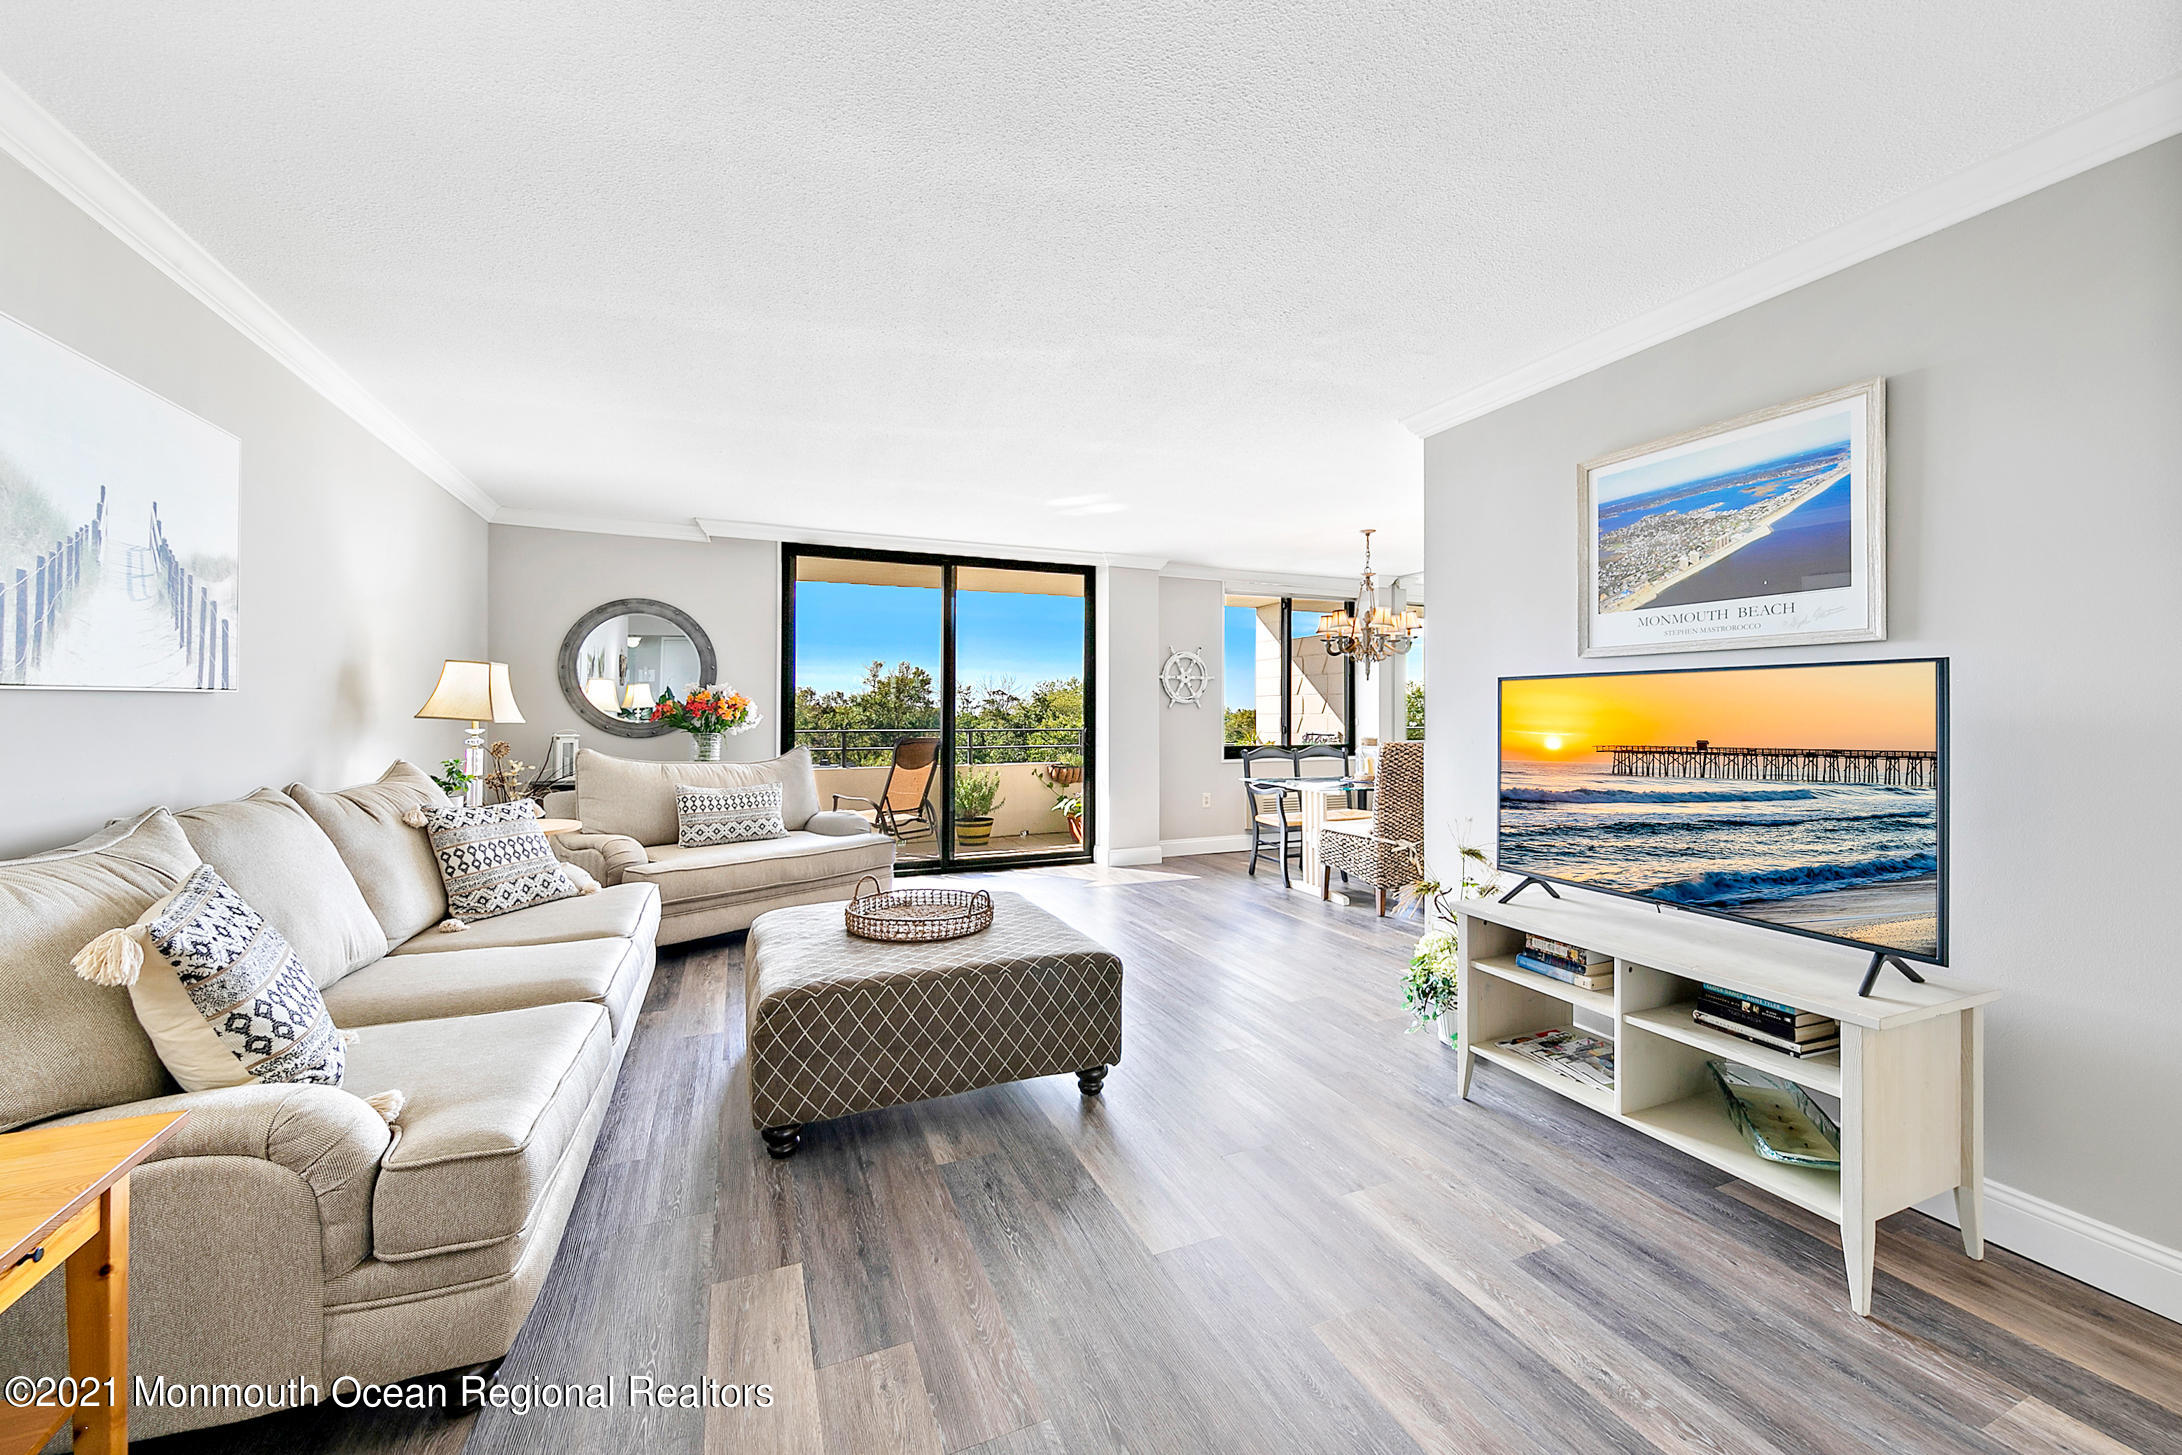 1 Channel Drive, Monmouth Beach, New Jersey 07750, 2 Bedrooms Bedrooms, ,2 BathroomsBathrooms,Condominium,For Sale,1 Channel Drive,1,22105881